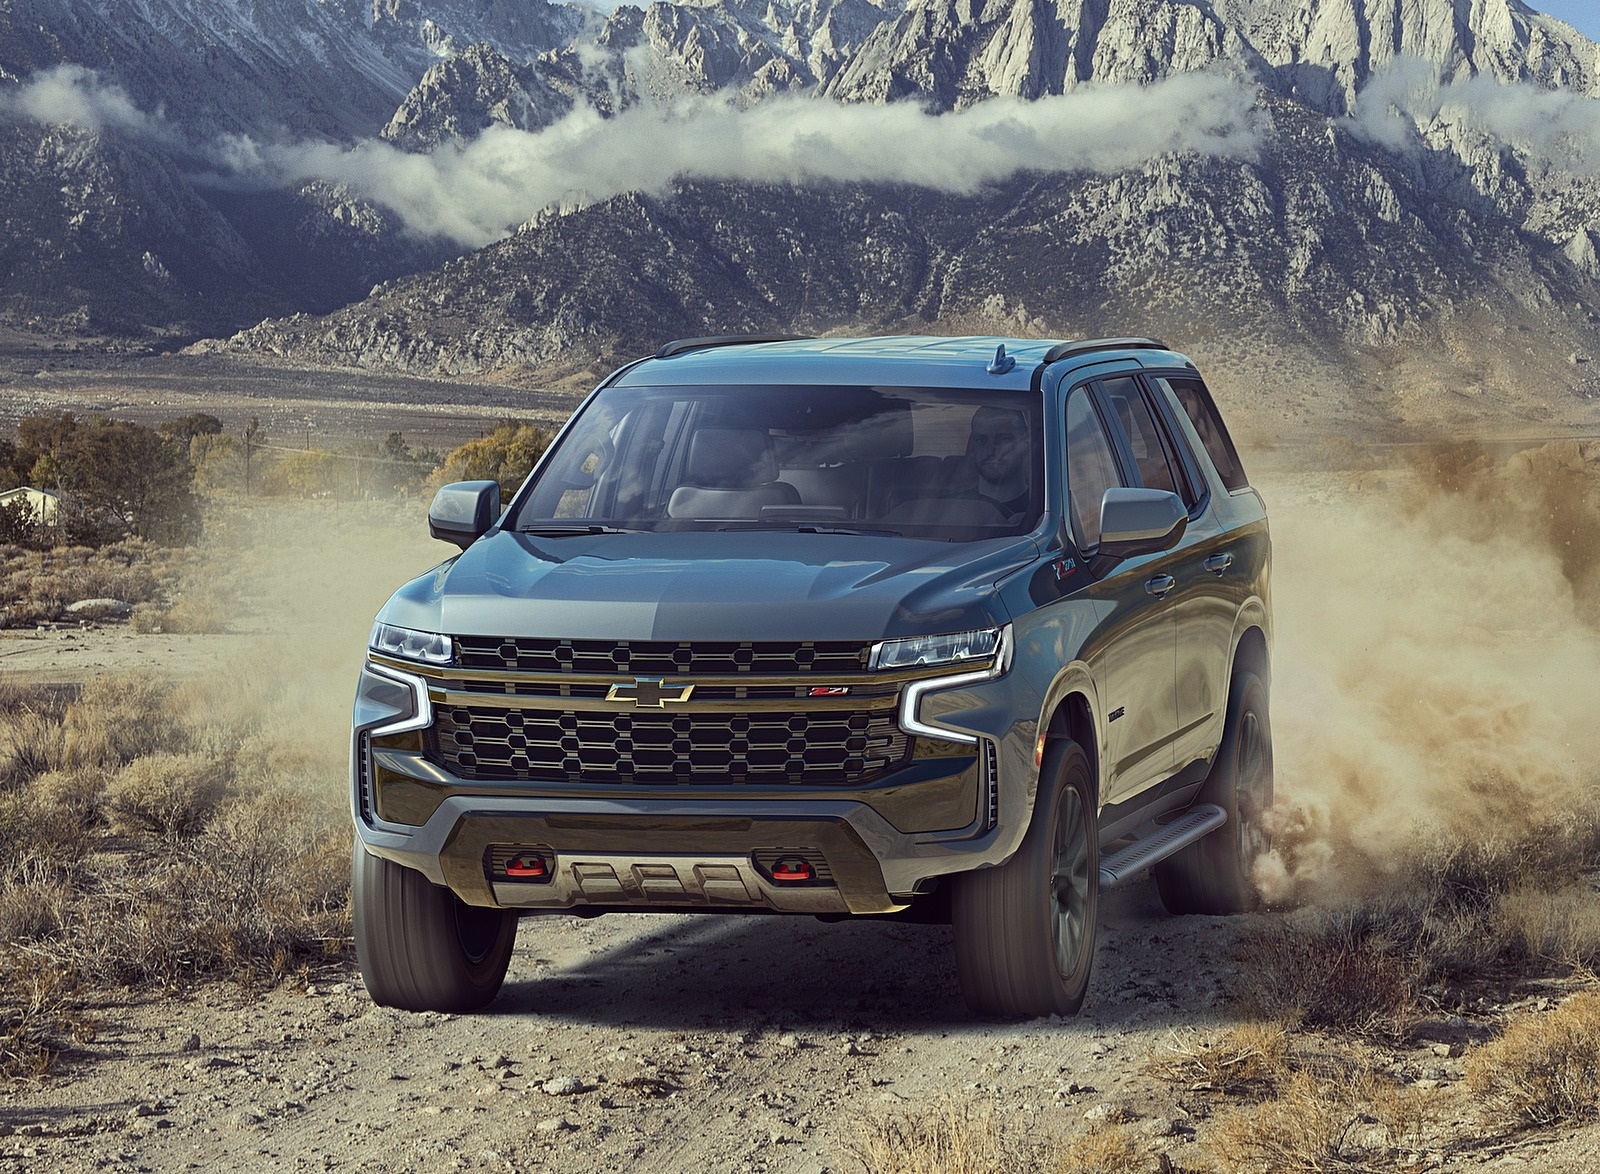 2021 Chevrolet Tahoe Z71 Off-Road Wallpapers (1)